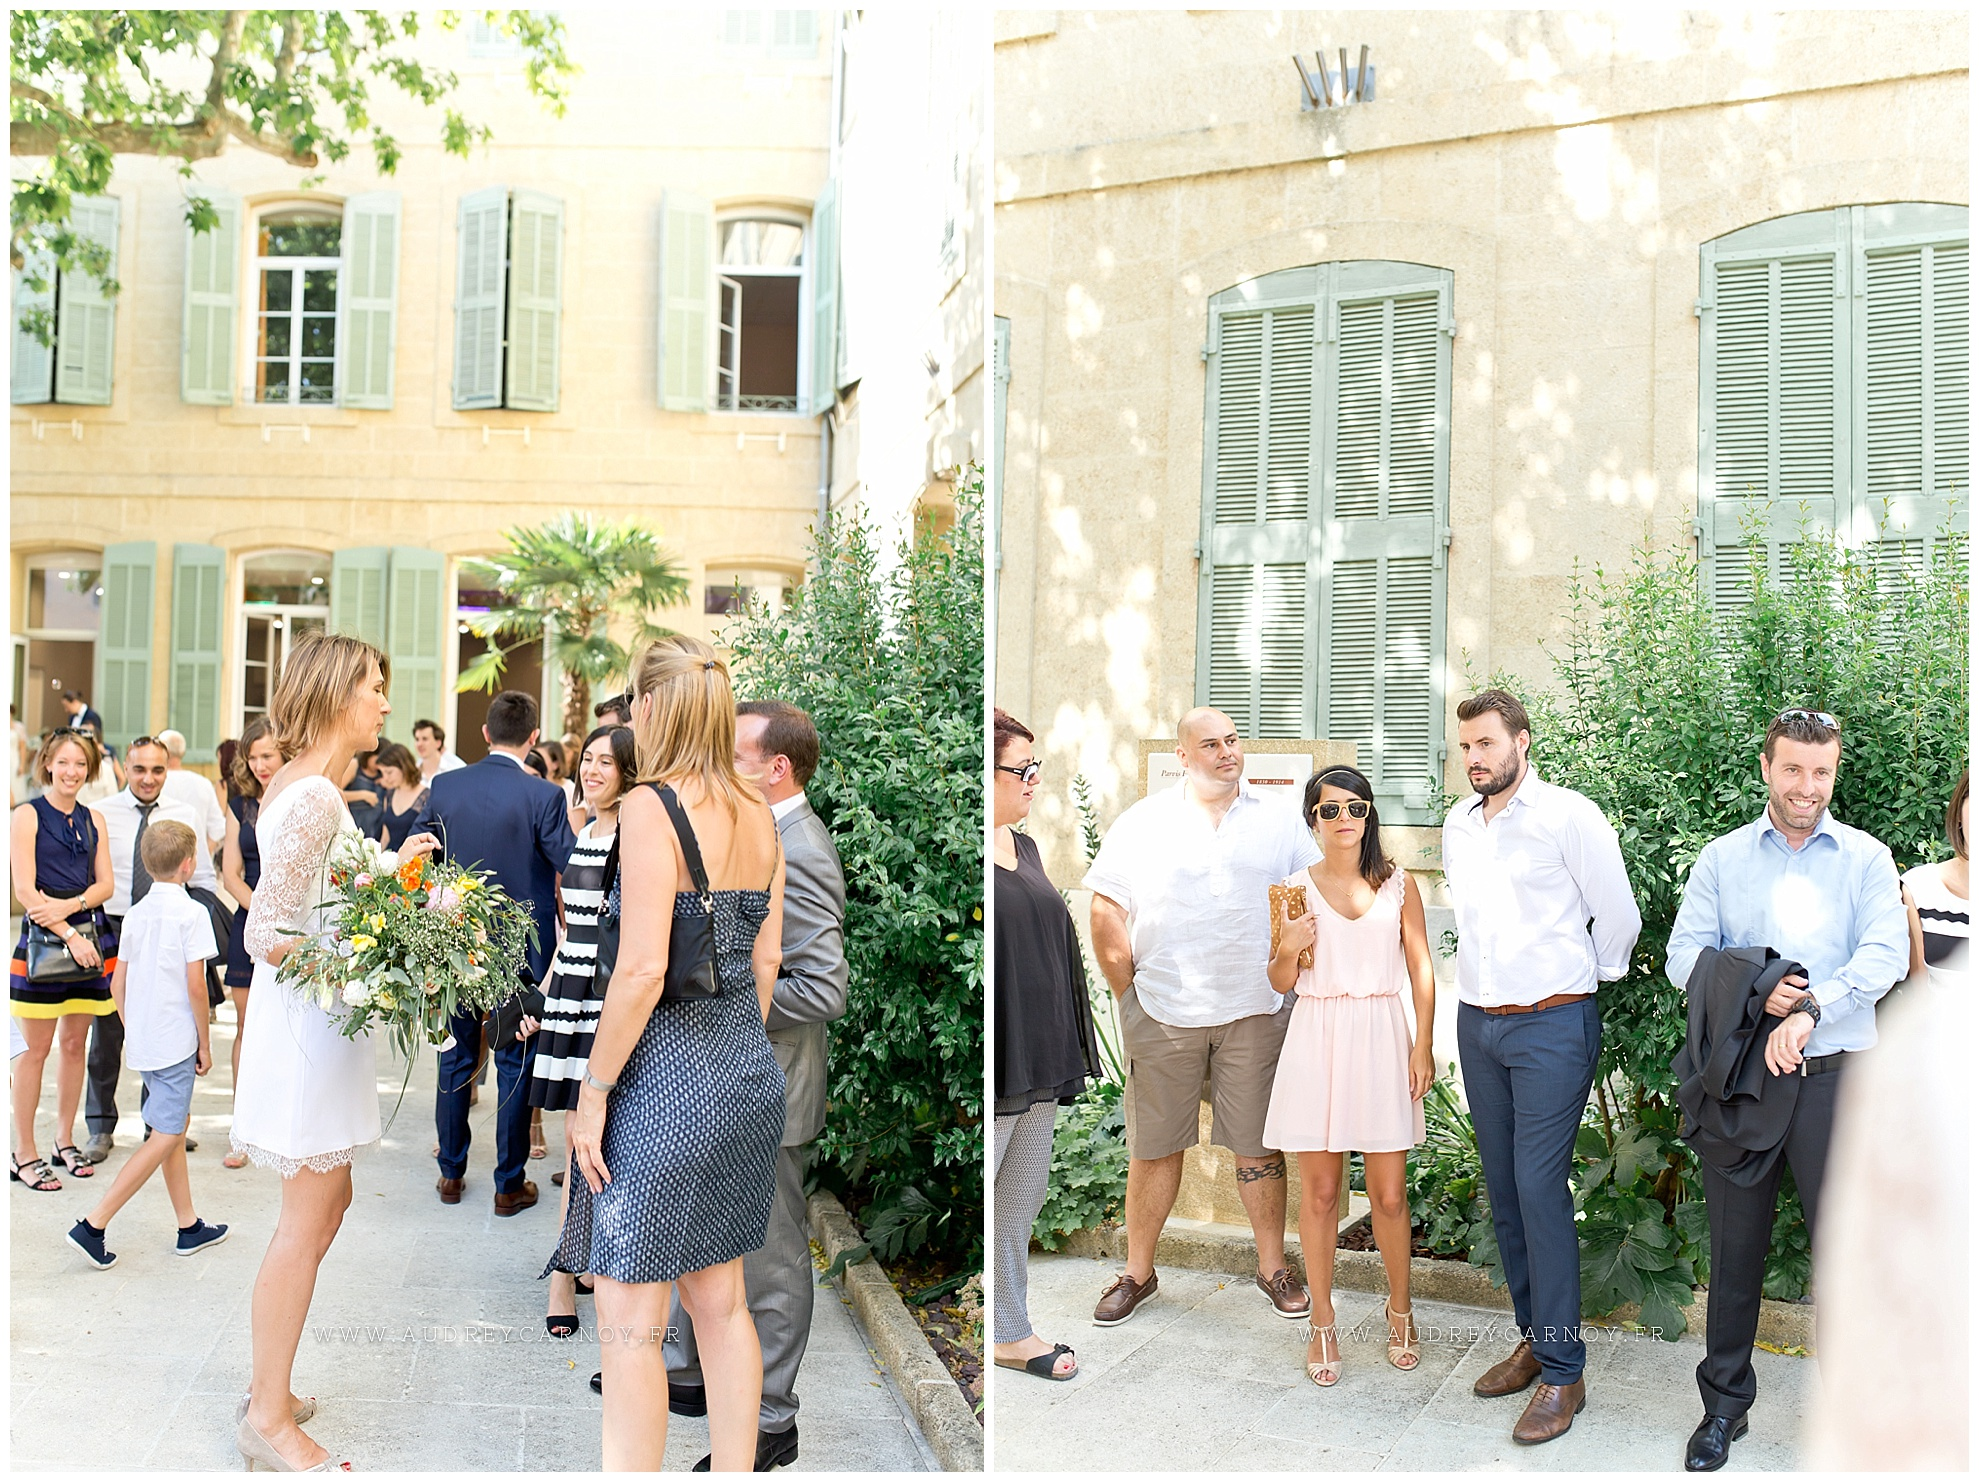 Mariage Pertuis | Laurence & Anthony 22